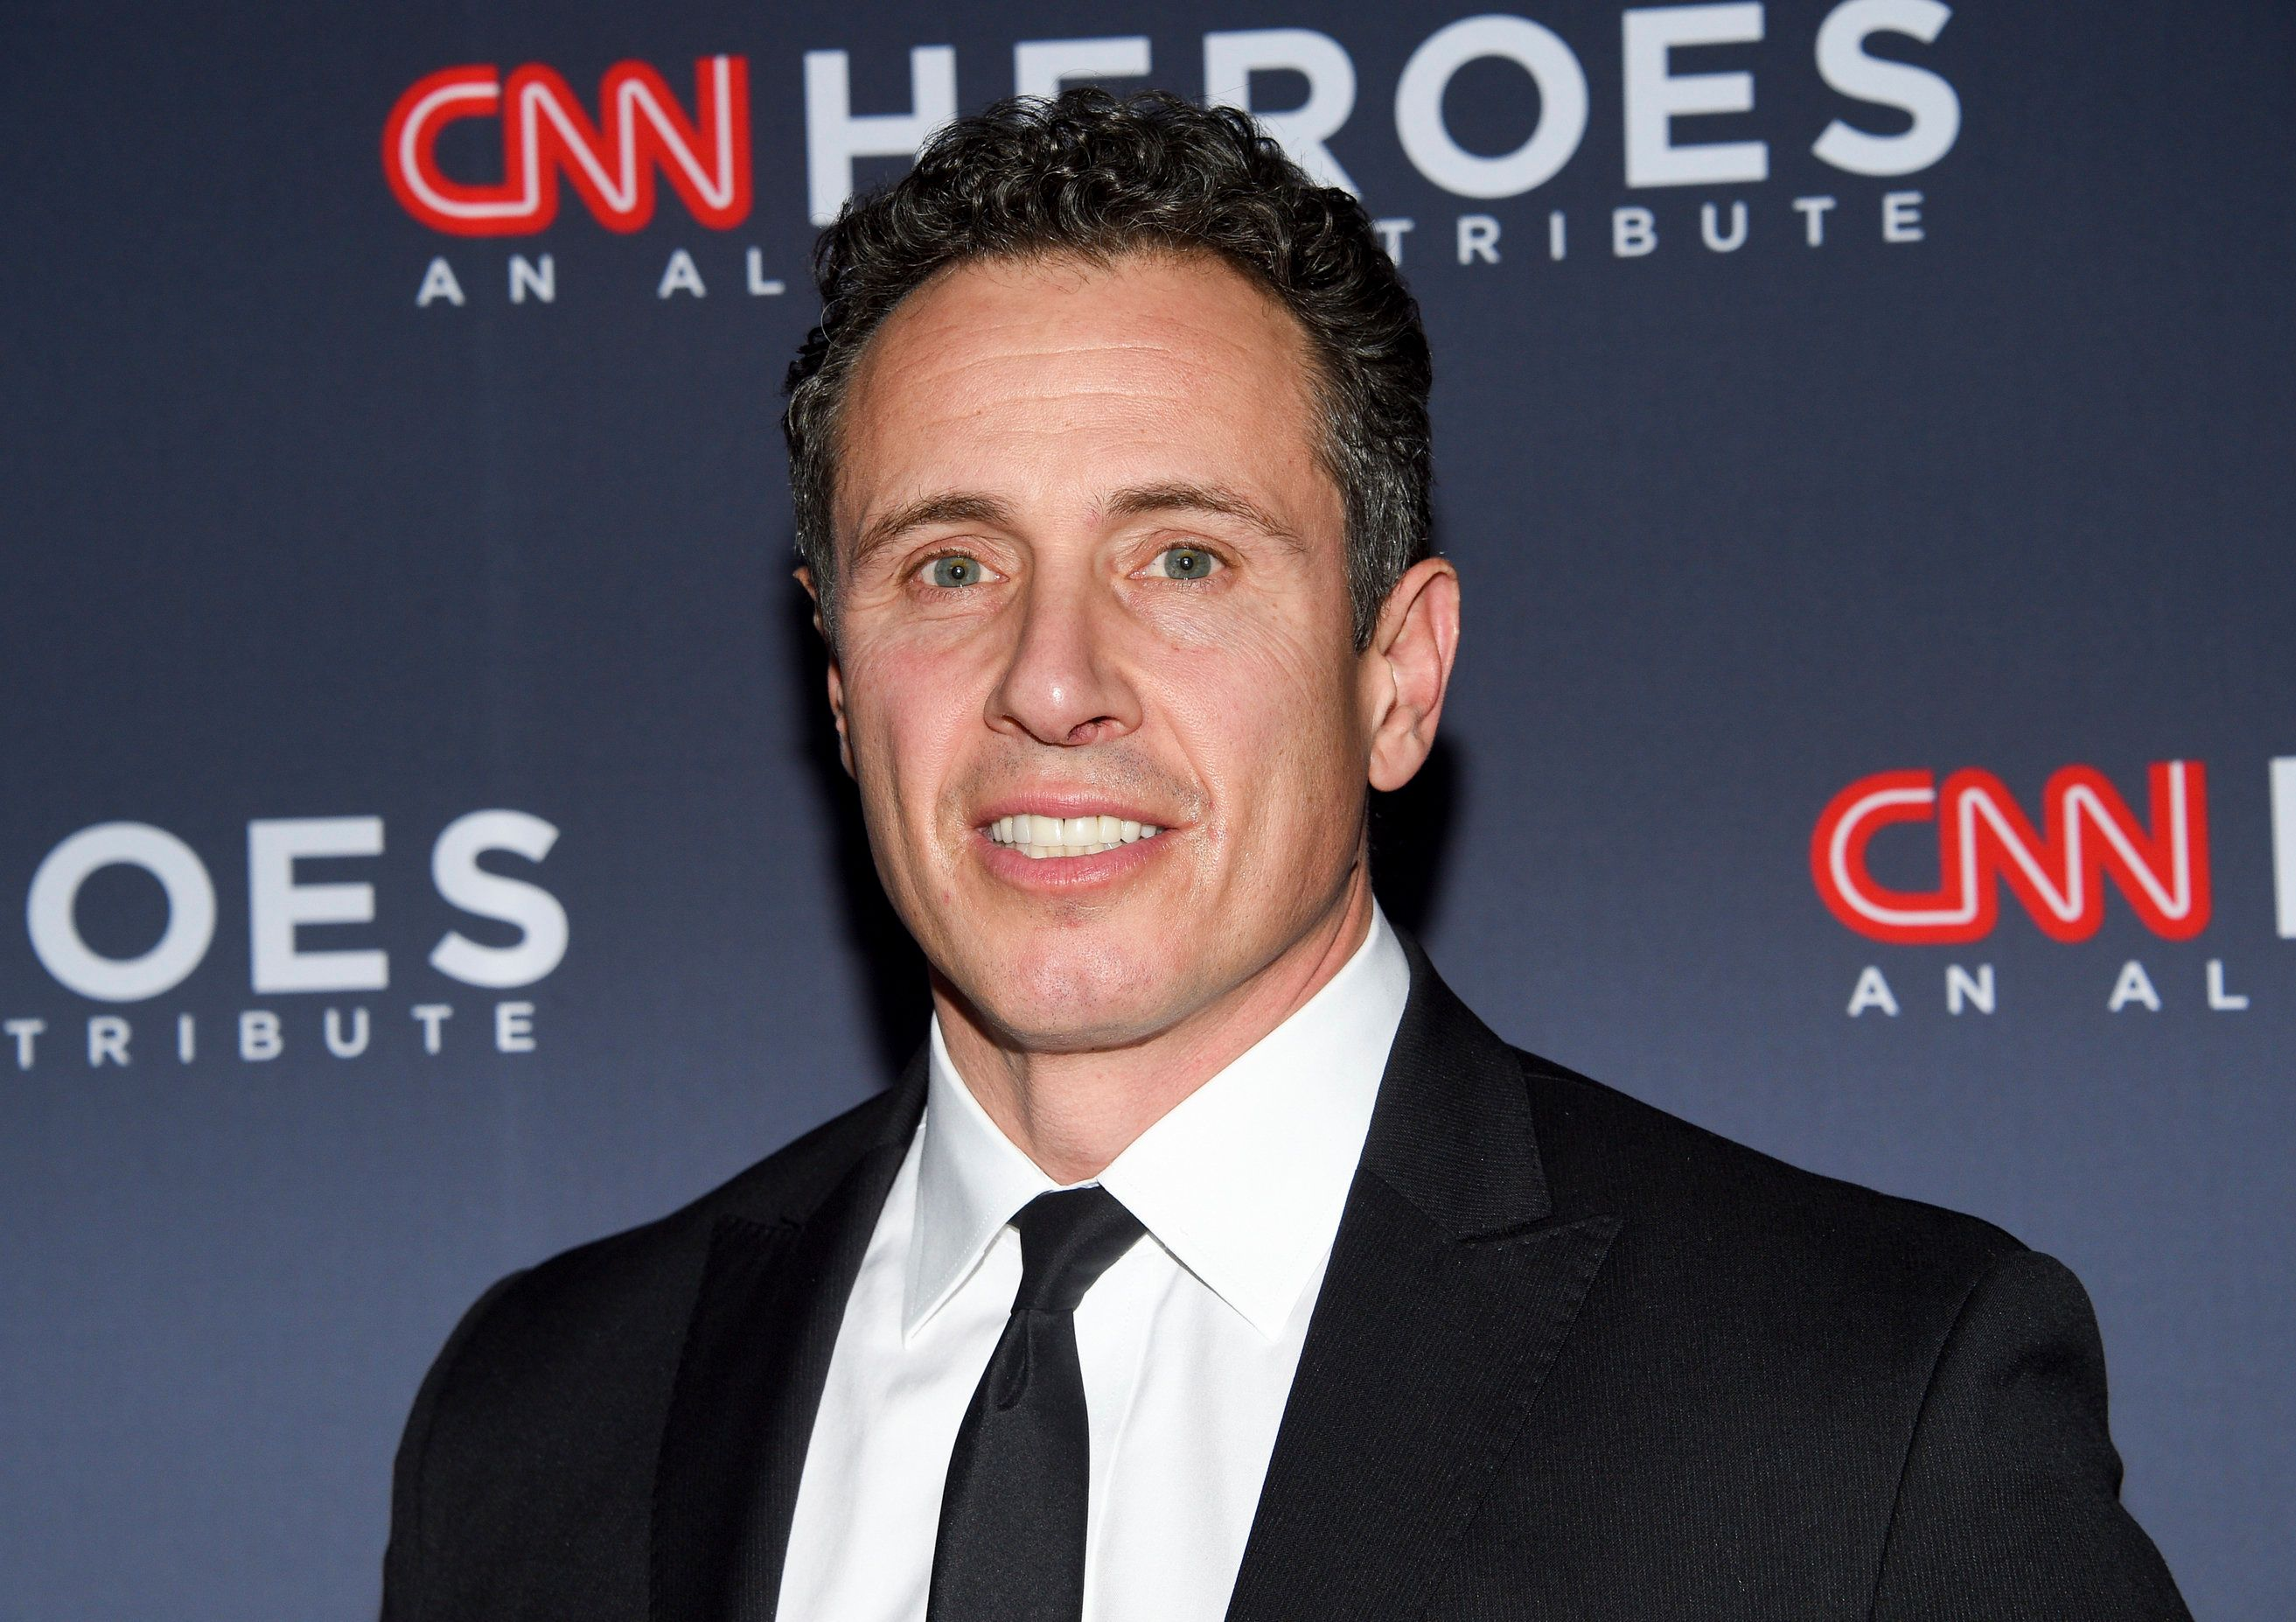 "FILE - In this Dec. 9, 2018 file photo, CNN anchor Chris Cuomo attends the 12th annual CNN Heroes: An All-Star Tribute in New York.  Cuomo has quickly established himself as the network's most popular personality, despite airing in a difficult time slot against Sean Hannity and Rachel Maddow. His ""Prime Time"" is CNN's most popular program. With 1.64 million viewers in January, the Nielsen company said Cuomo's show had its best month. (Photo by Evan Agostini/Invision/AP, File)"